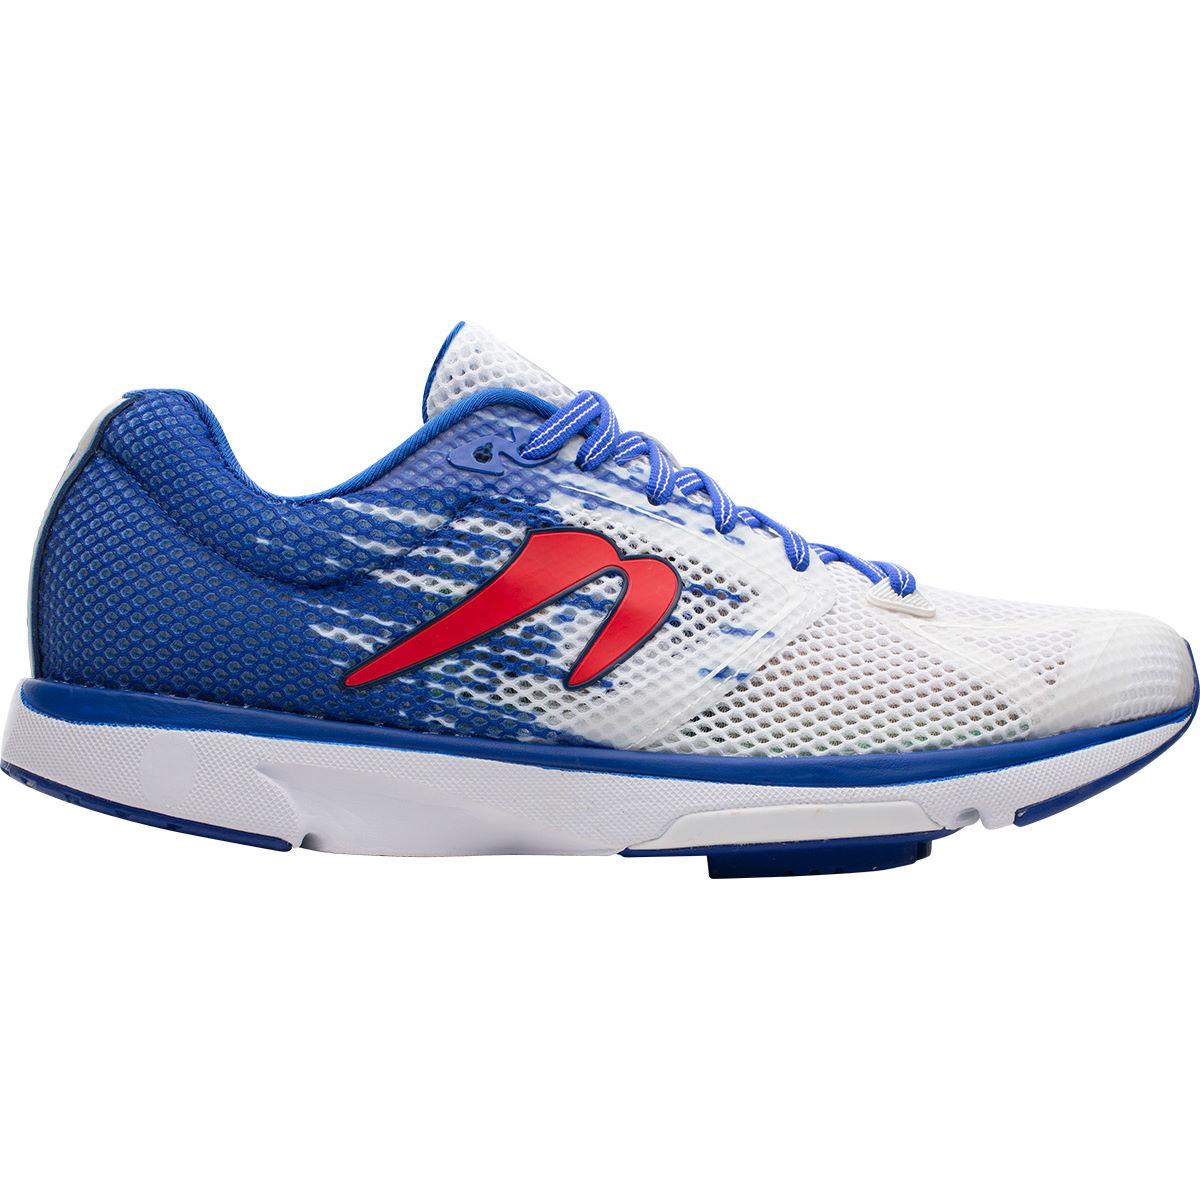 Newton Running Shoes Distance 10 Running Shoes - Uk 12 Blue/white